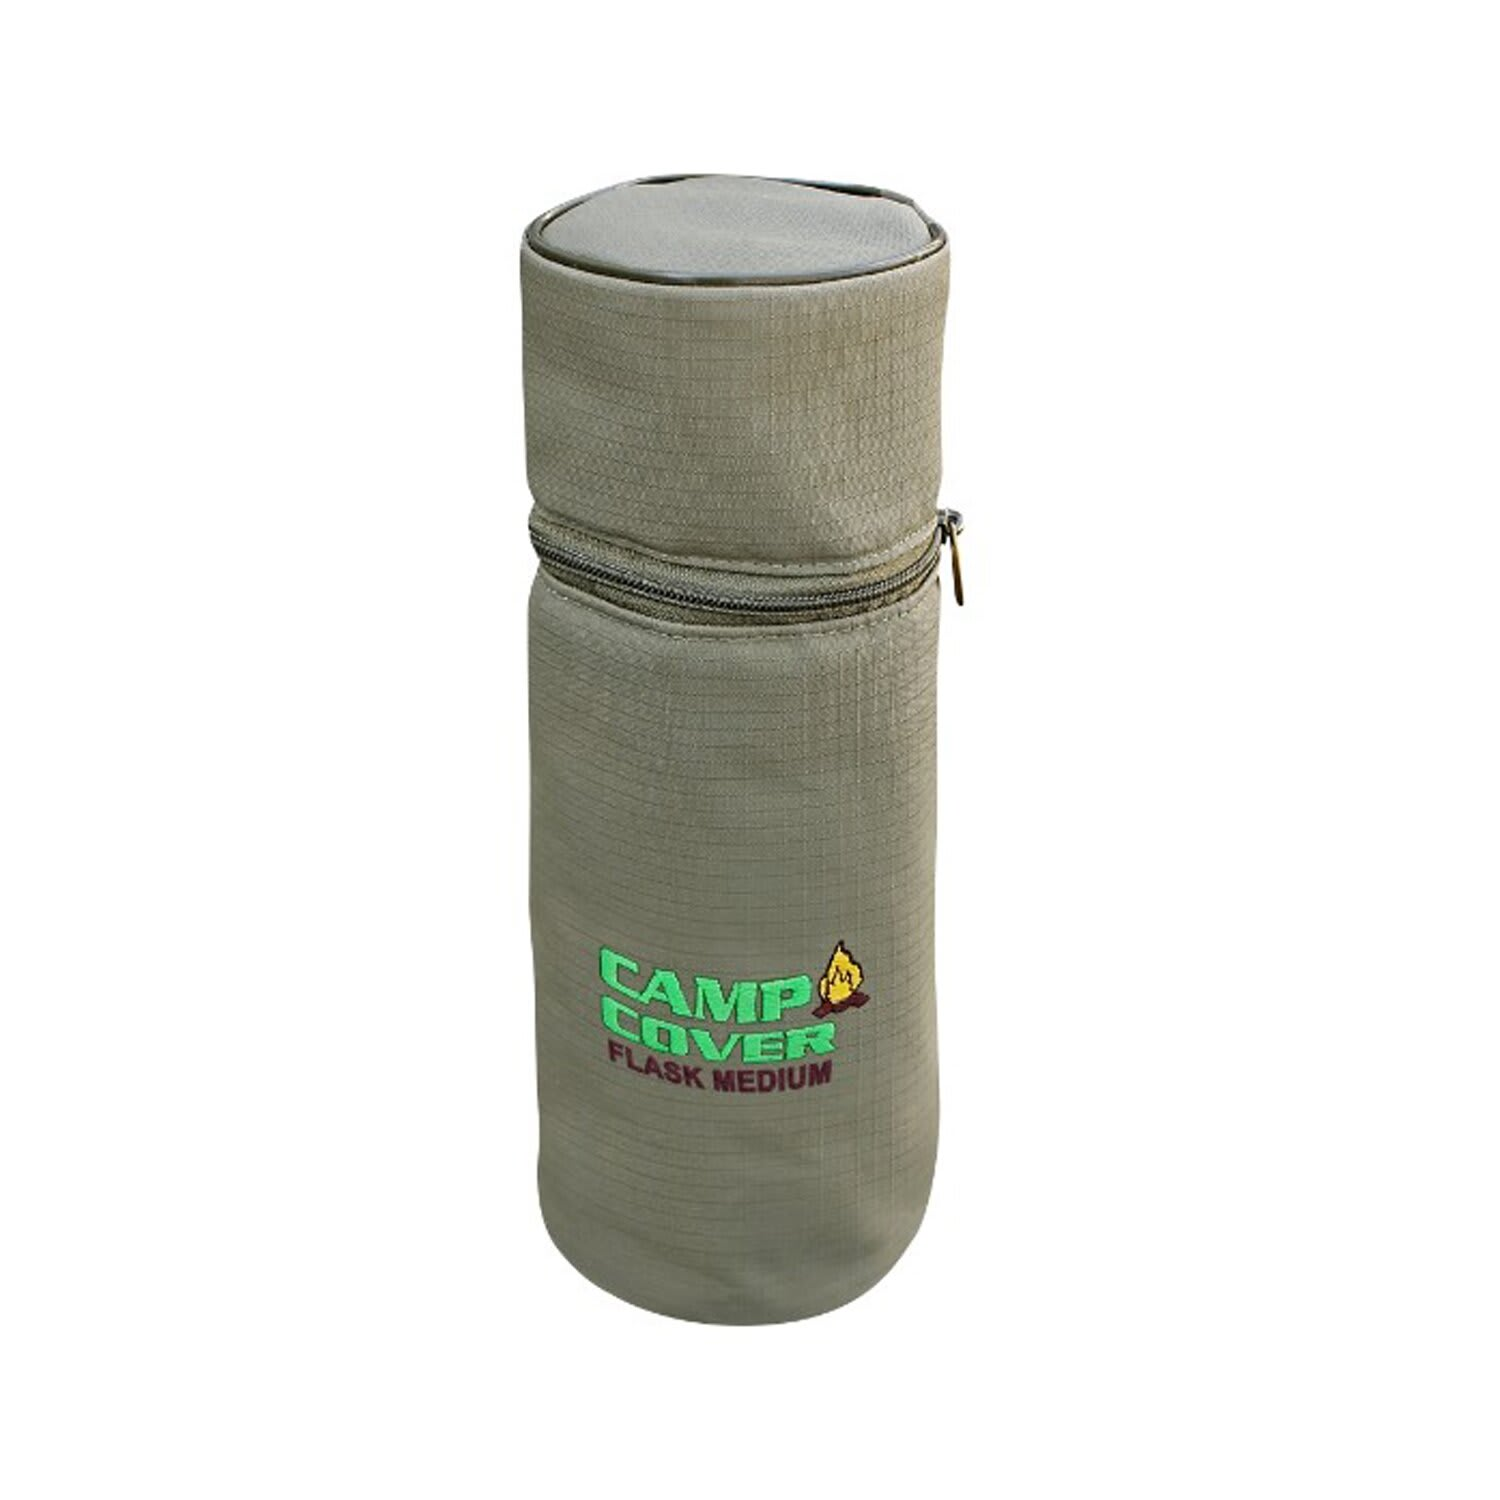 Camp Cover Medium Universal Flask Cover